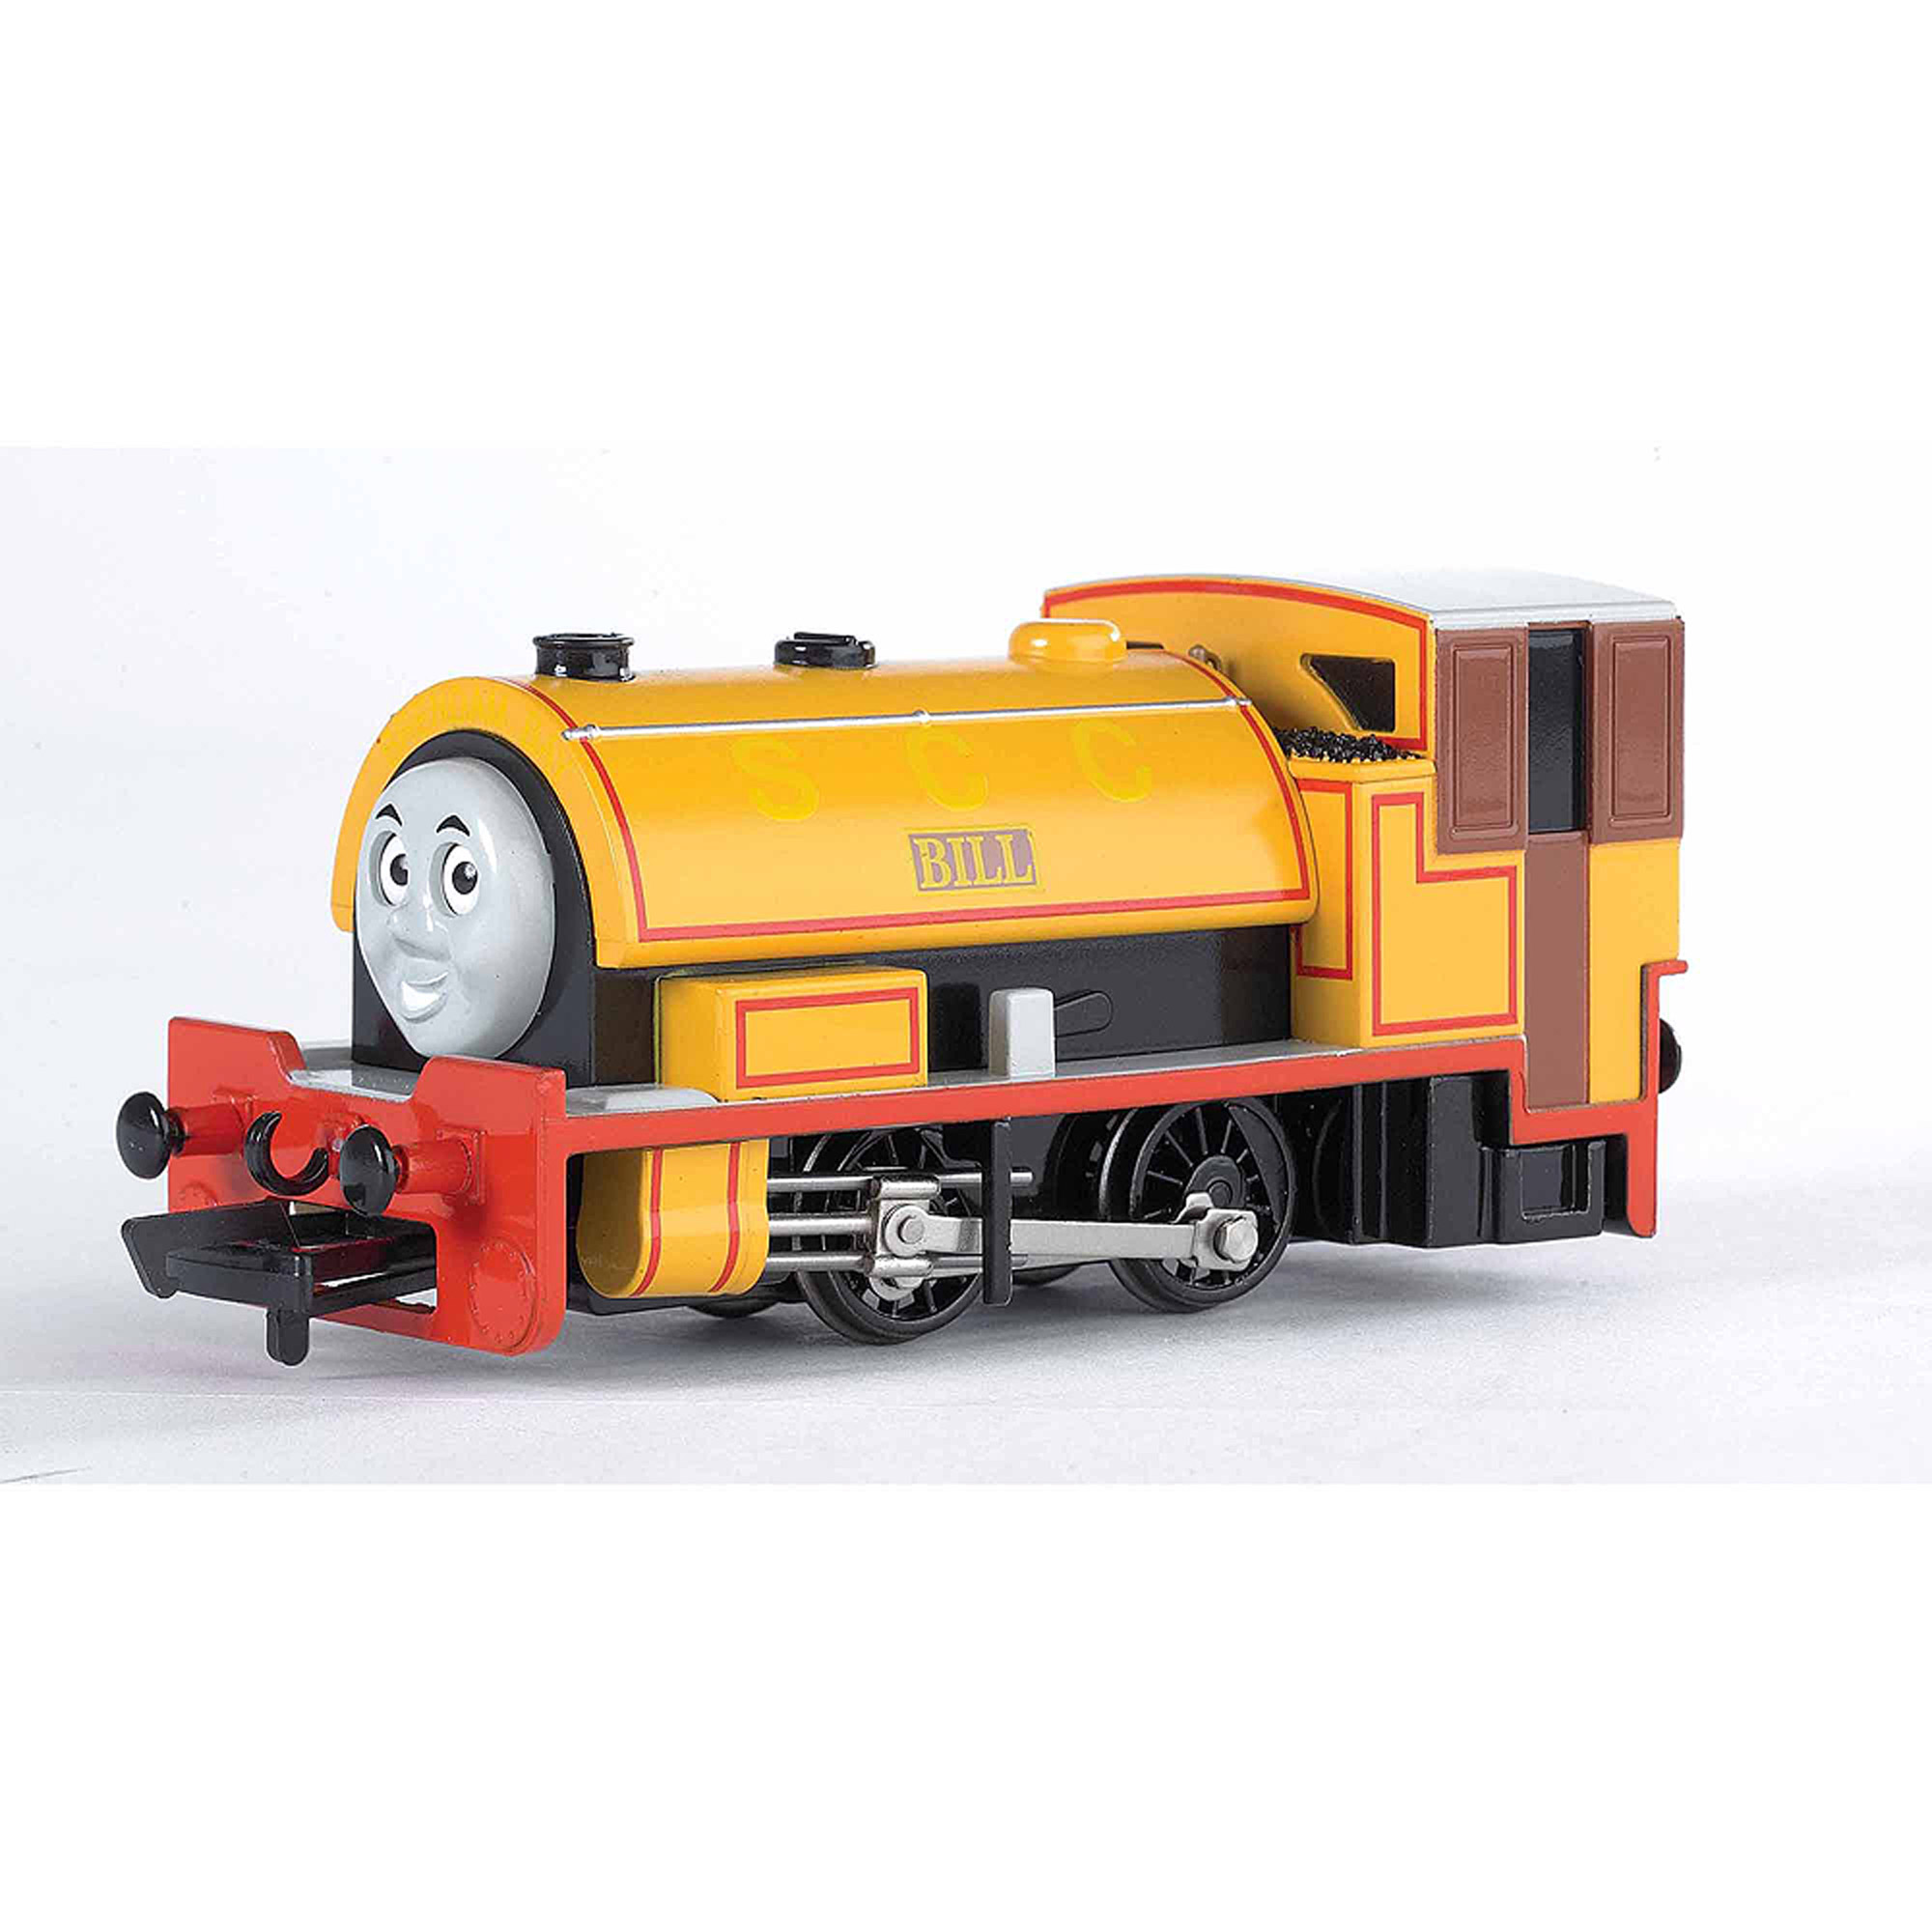 Bachmann Trains Thomas and Friends Bill Locomotive with Moving Eyes, HO Scale Train